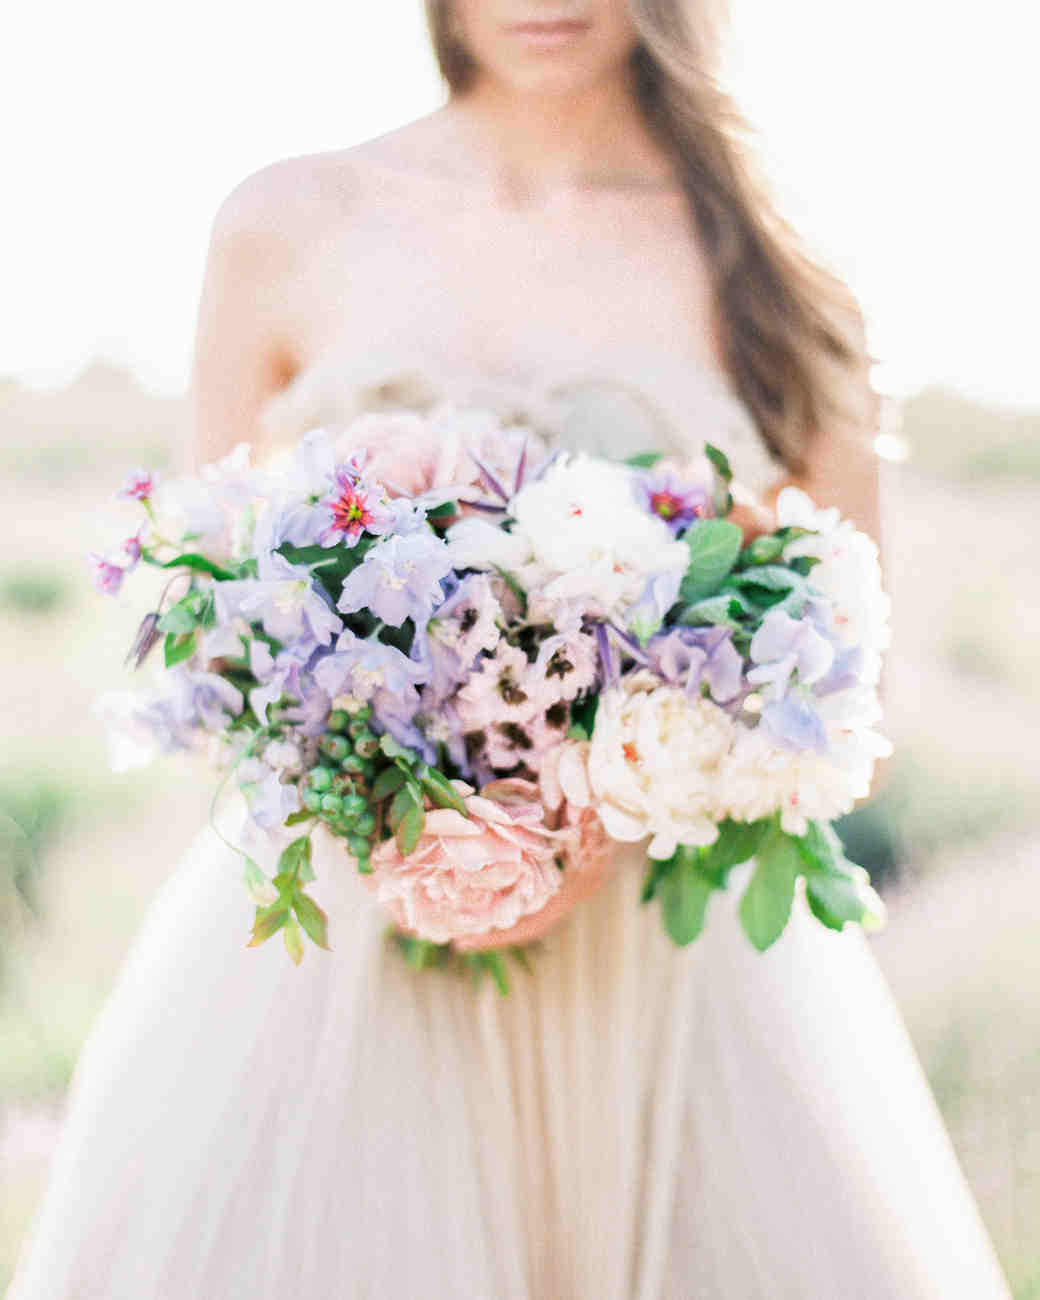 Pastel Wedding Flowers: The 50 Best Spring Wedding Bouquets